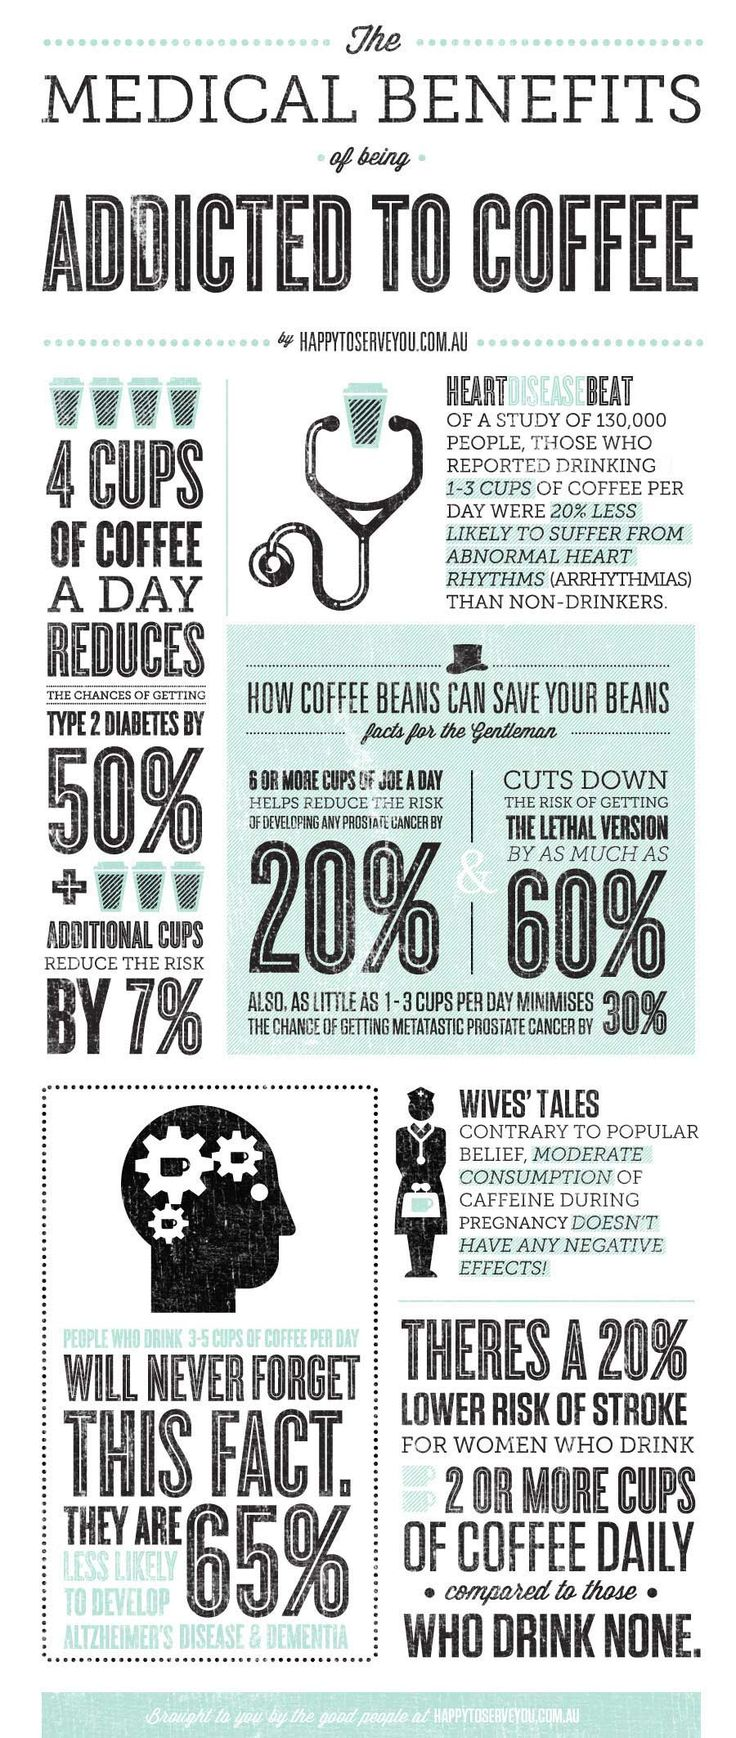 The Medical Benefits Of Being Addicted To Coffee. #Infographic #health #coffee #heart #diabetes #pregnancy #cancer #prostate #ProstateCancer #caffeine #Alzheimer #dementia #disease #MentalHealth #MentalDisease #mental #stroke #gender #women